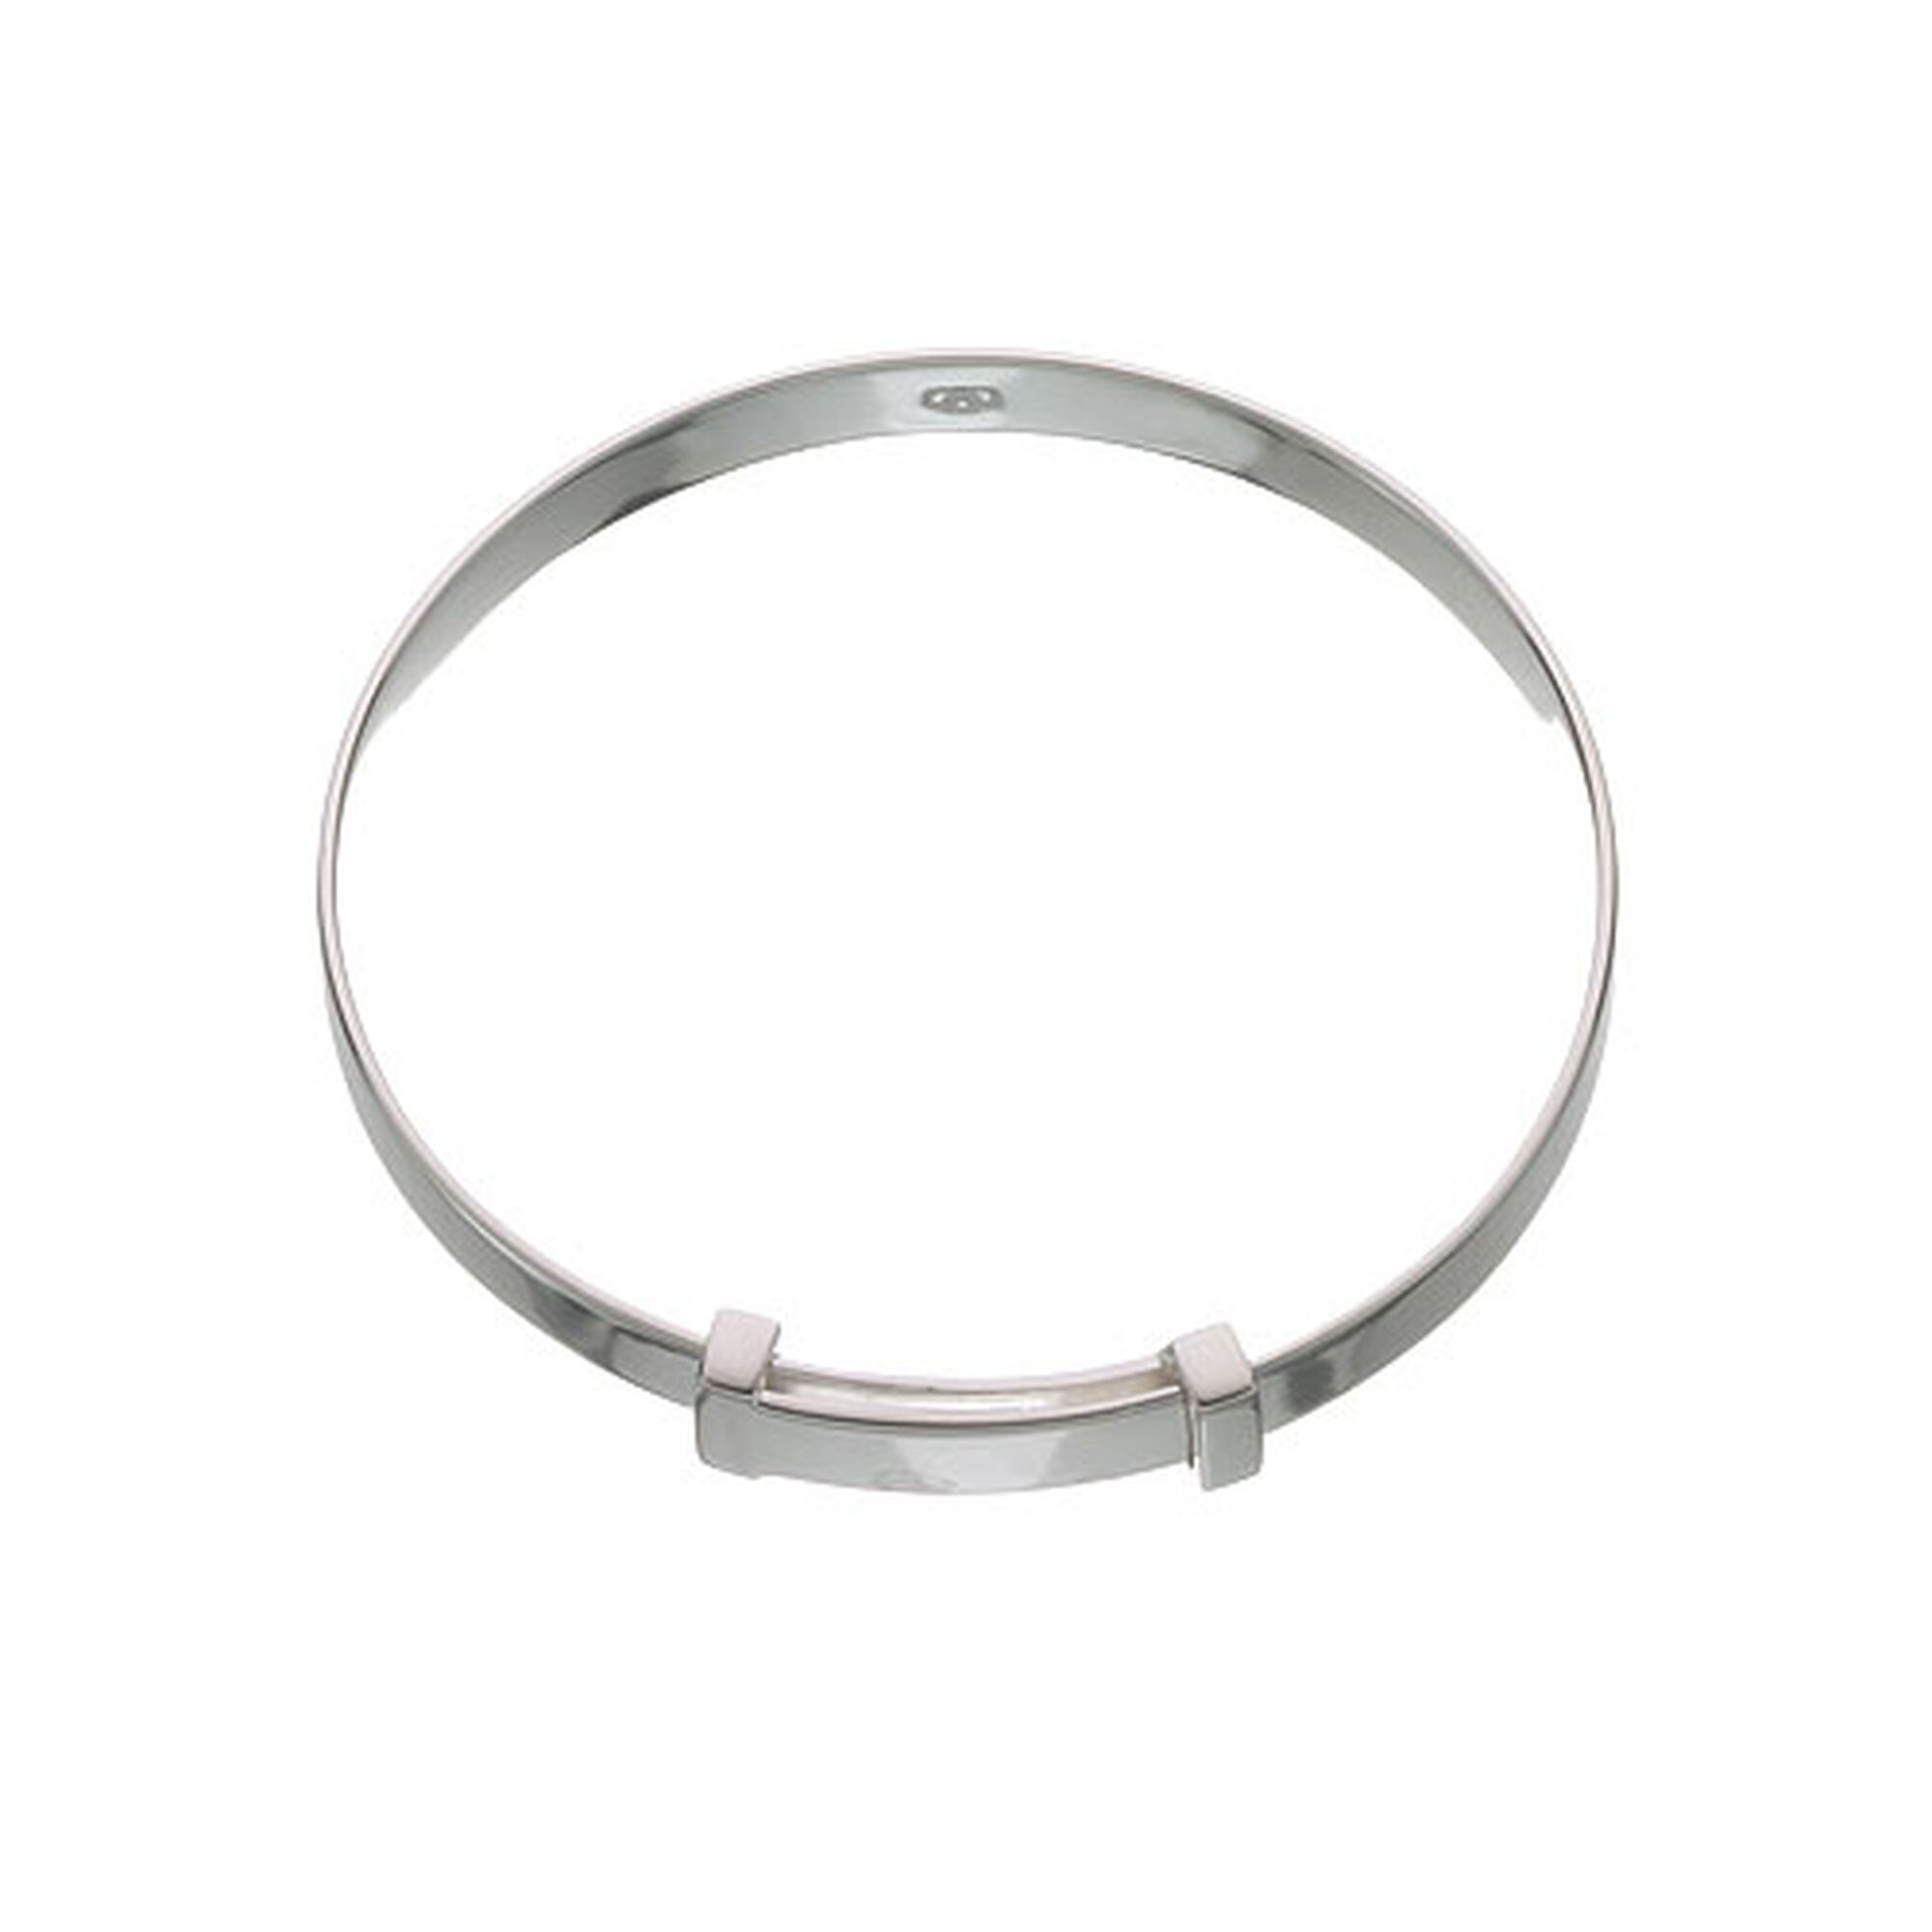 a silver ball fit simple bracelet plain circle and bangle this amazing features open cuff closure sterling an allows design wrap for bracelets products stylish pc ended details modern perfect bangles